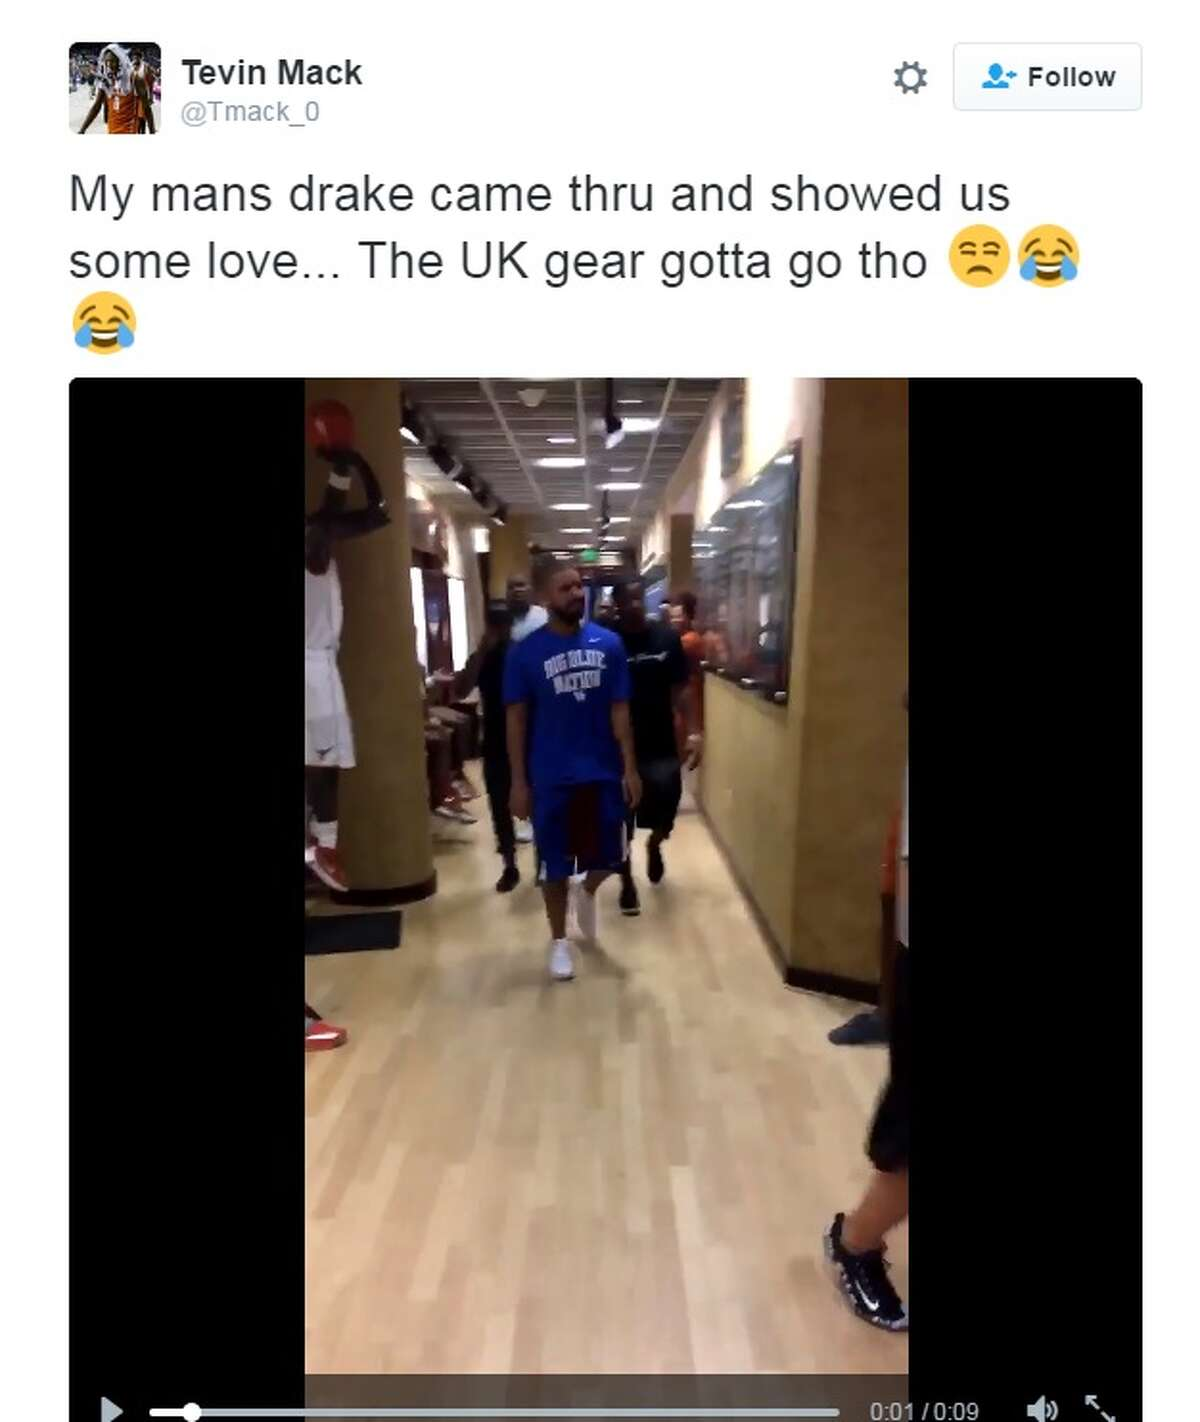 Tevin Mack, a UT basketball player, tweeted a video showing Drake in University of Kentucky gear, touring the Longhorn basketball facility on July 19, 2016.Keep clicking to see where to spot celebrities in Central Texas.